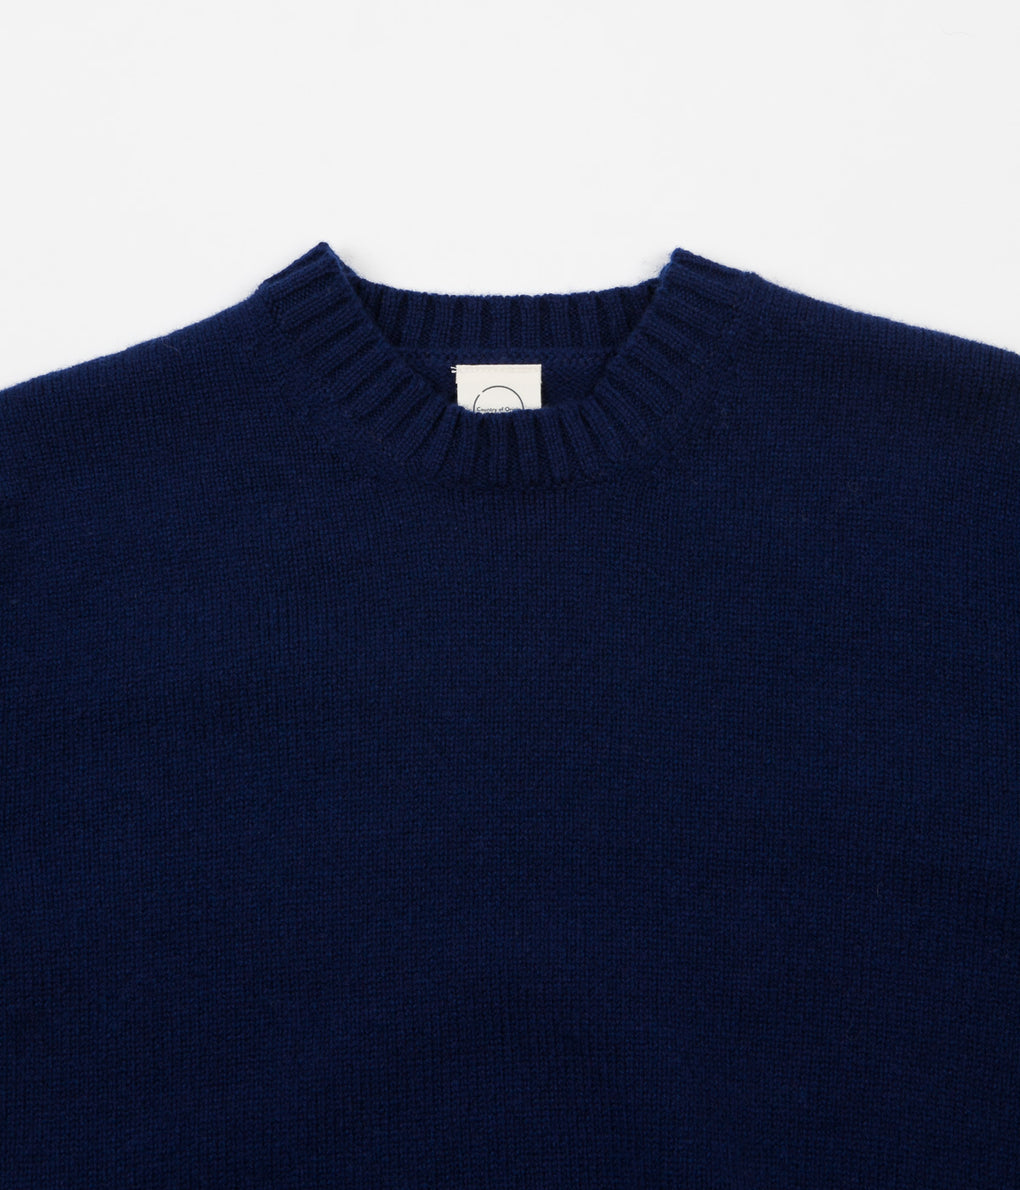 Country Of Origin Crewneck Sweatshirt - Navy